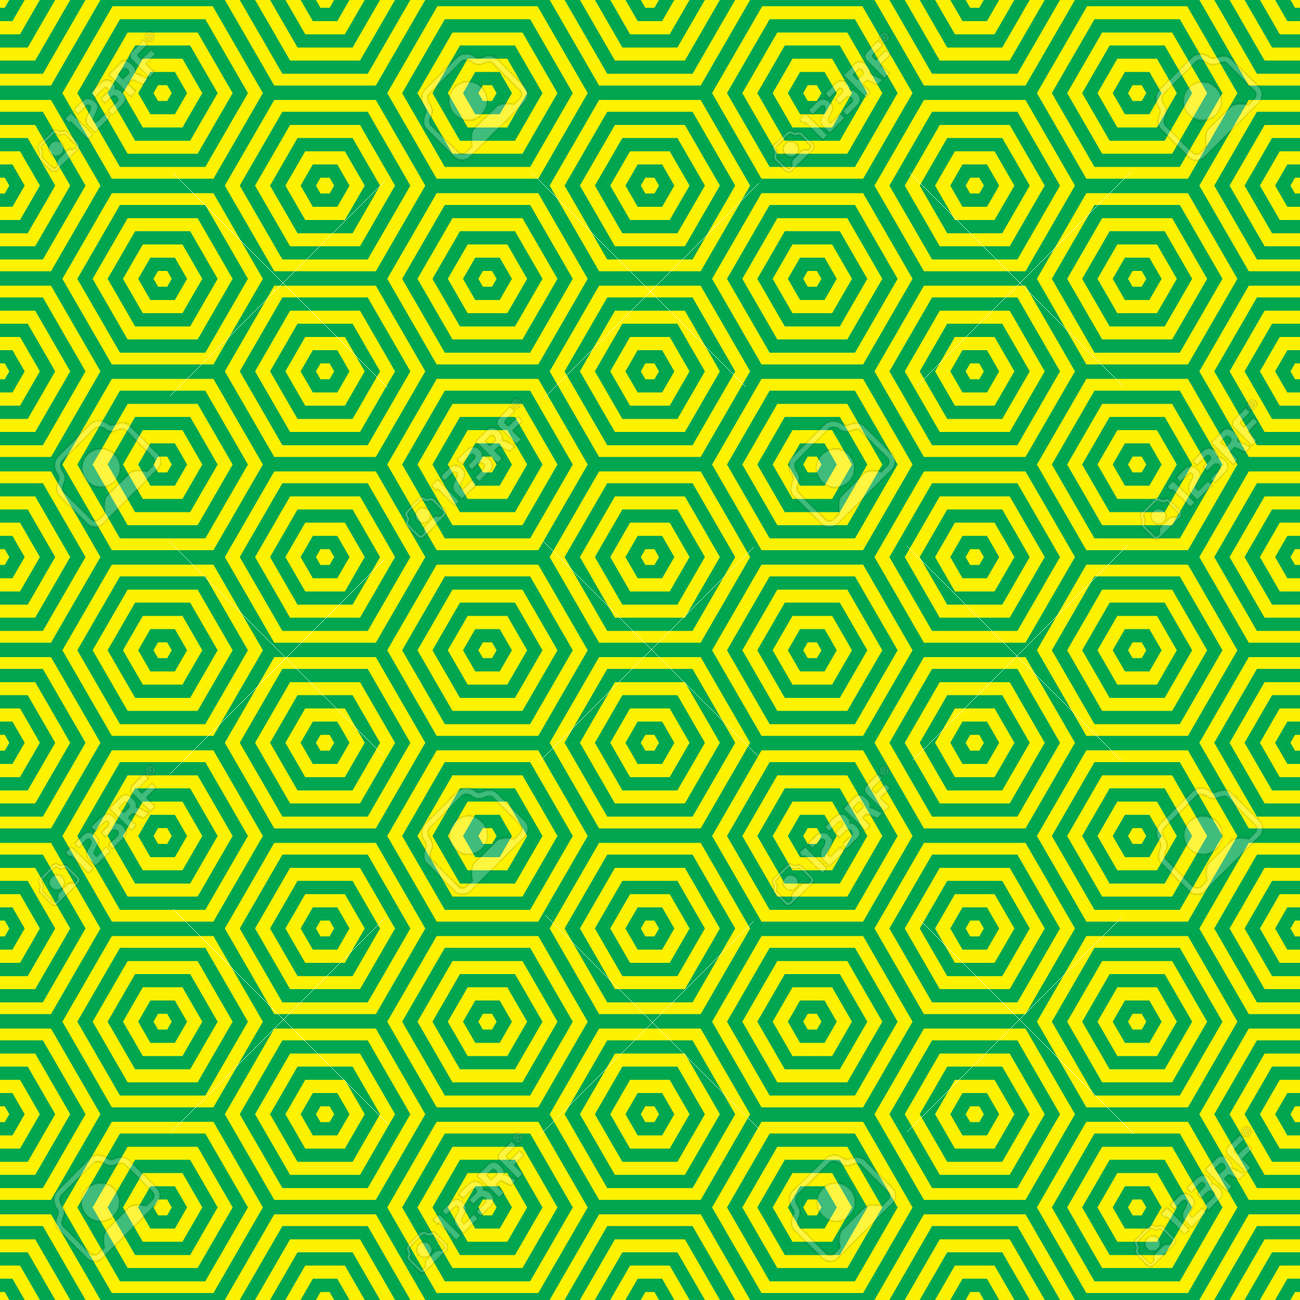 Green And Yellow Retro Seventies Inspired Wallpaper Pattern Stock